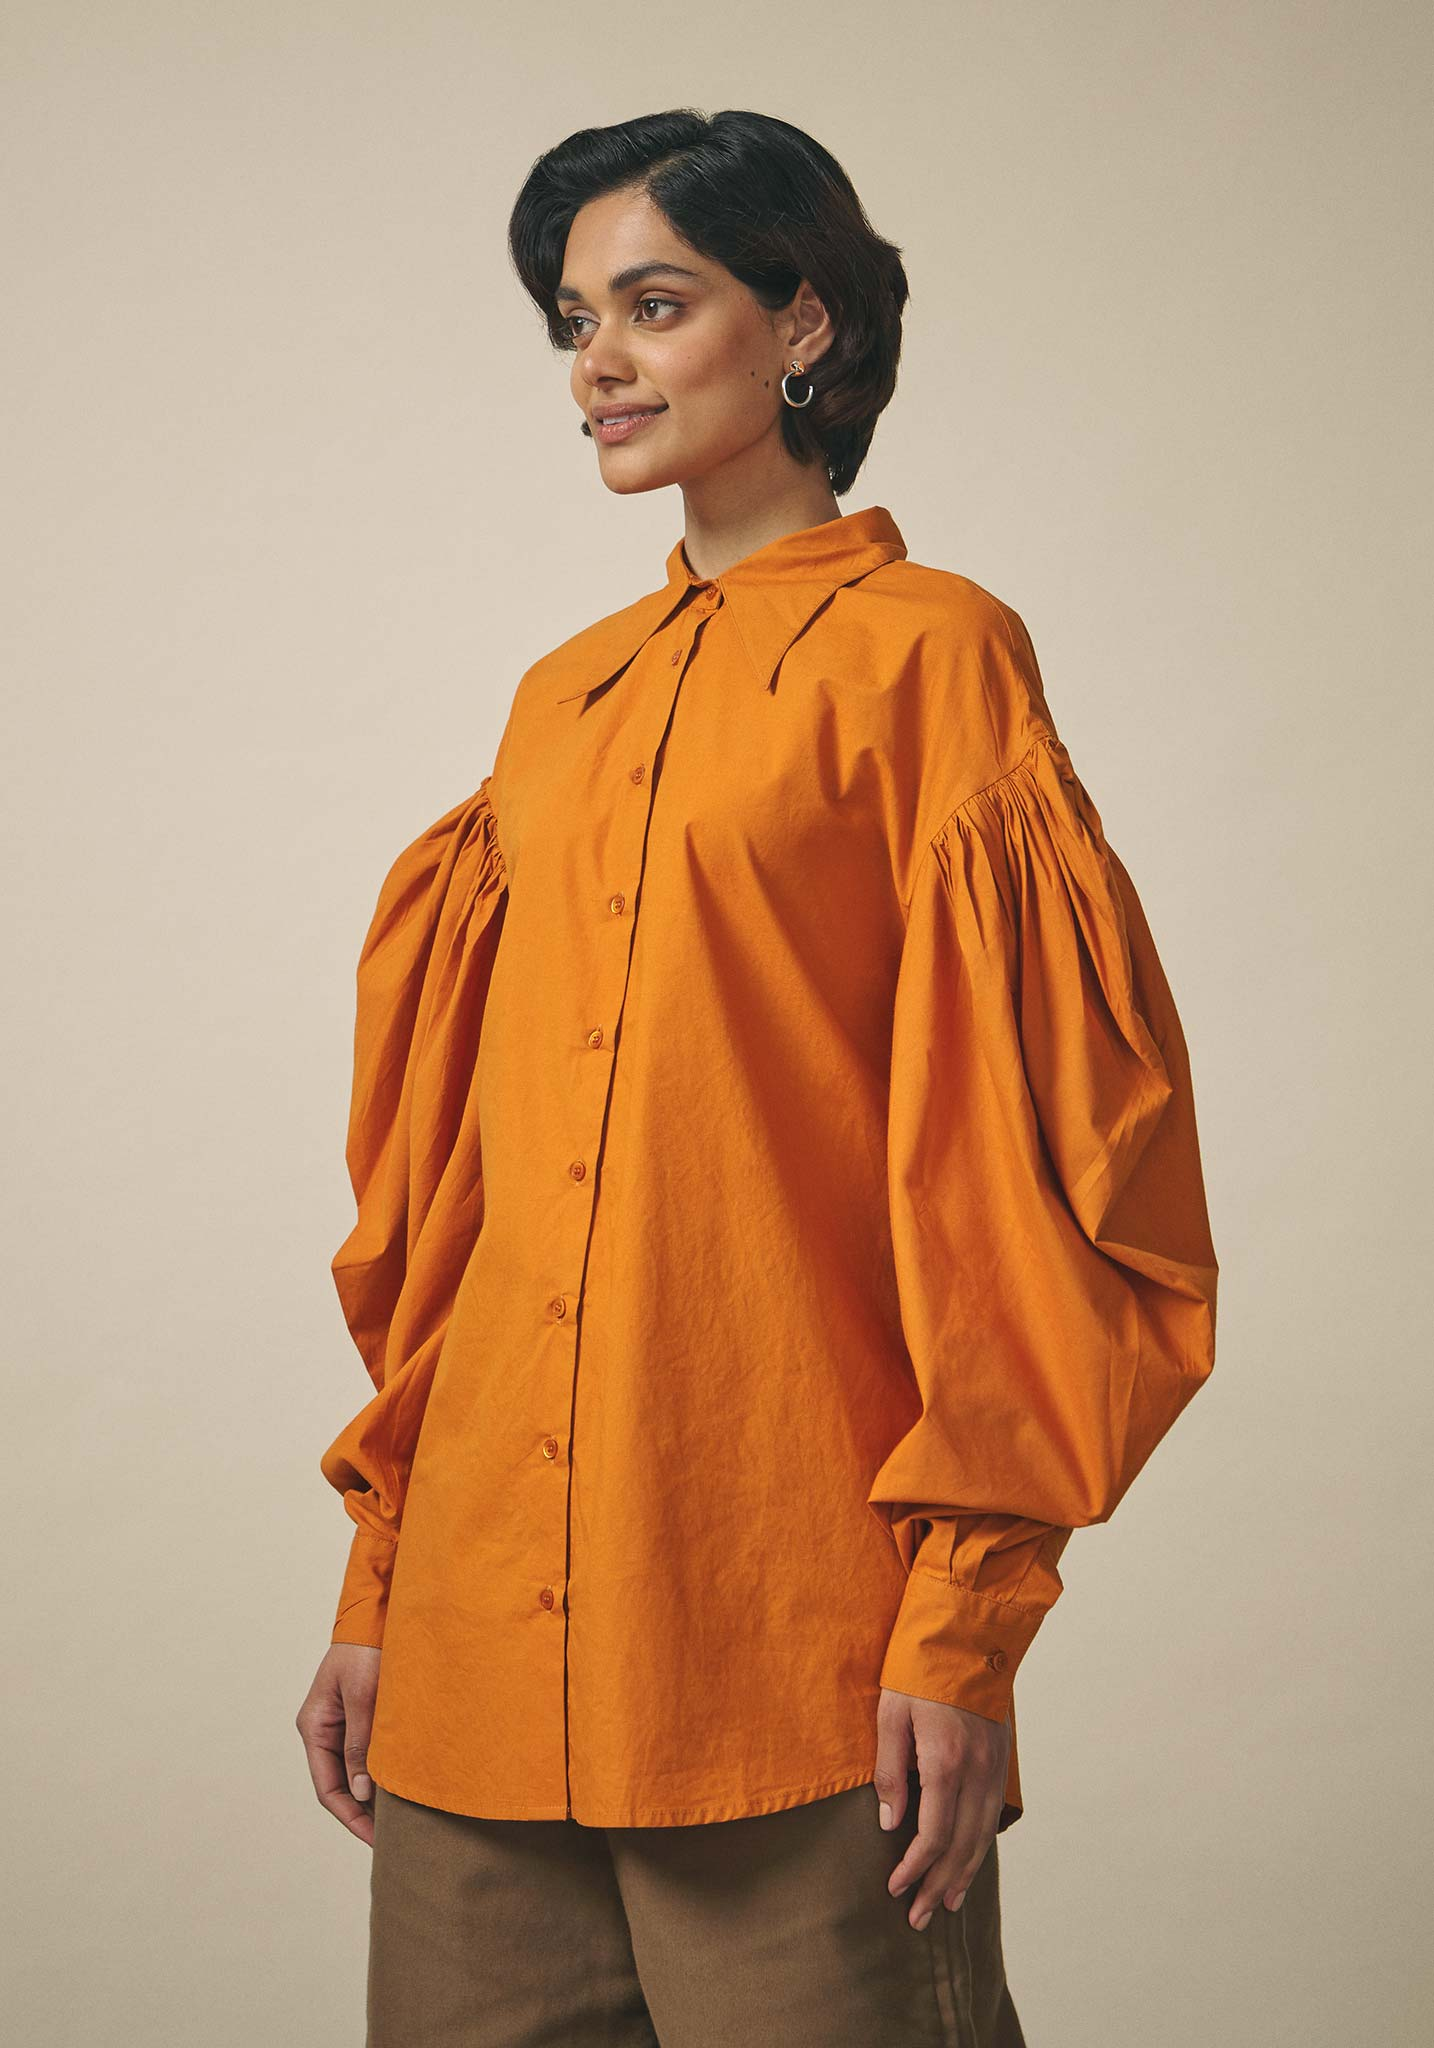 Dhruv Kapoor, Oversized Orange Wrap Shirt